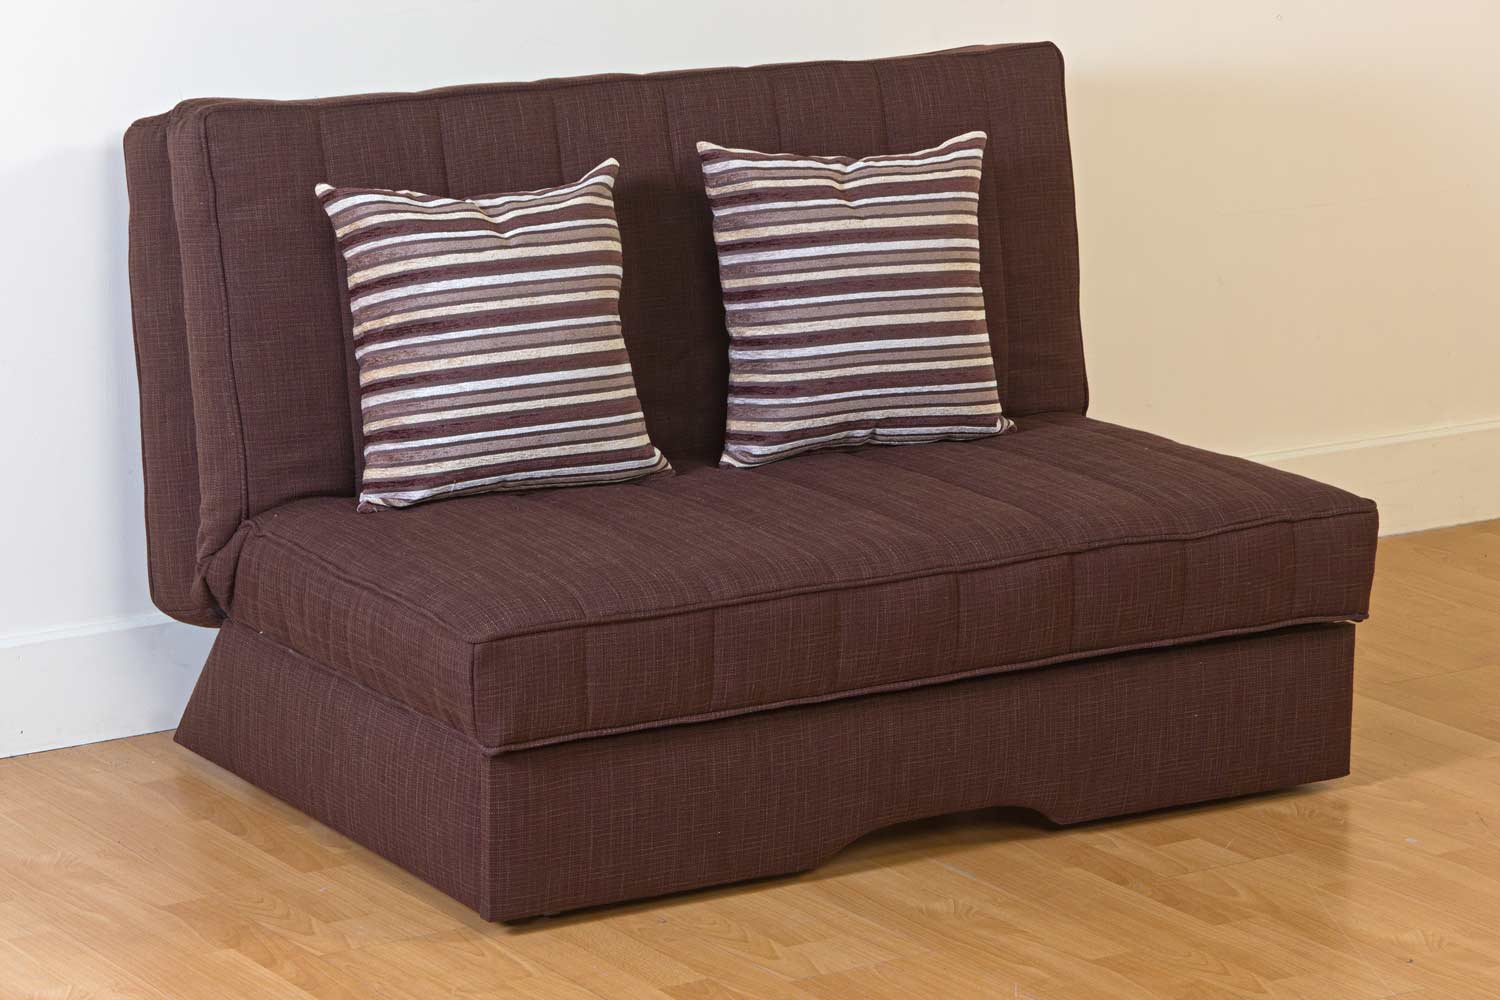 comfortable cheap futons in brown with cushion on wooden floor for living  room furniture ideas